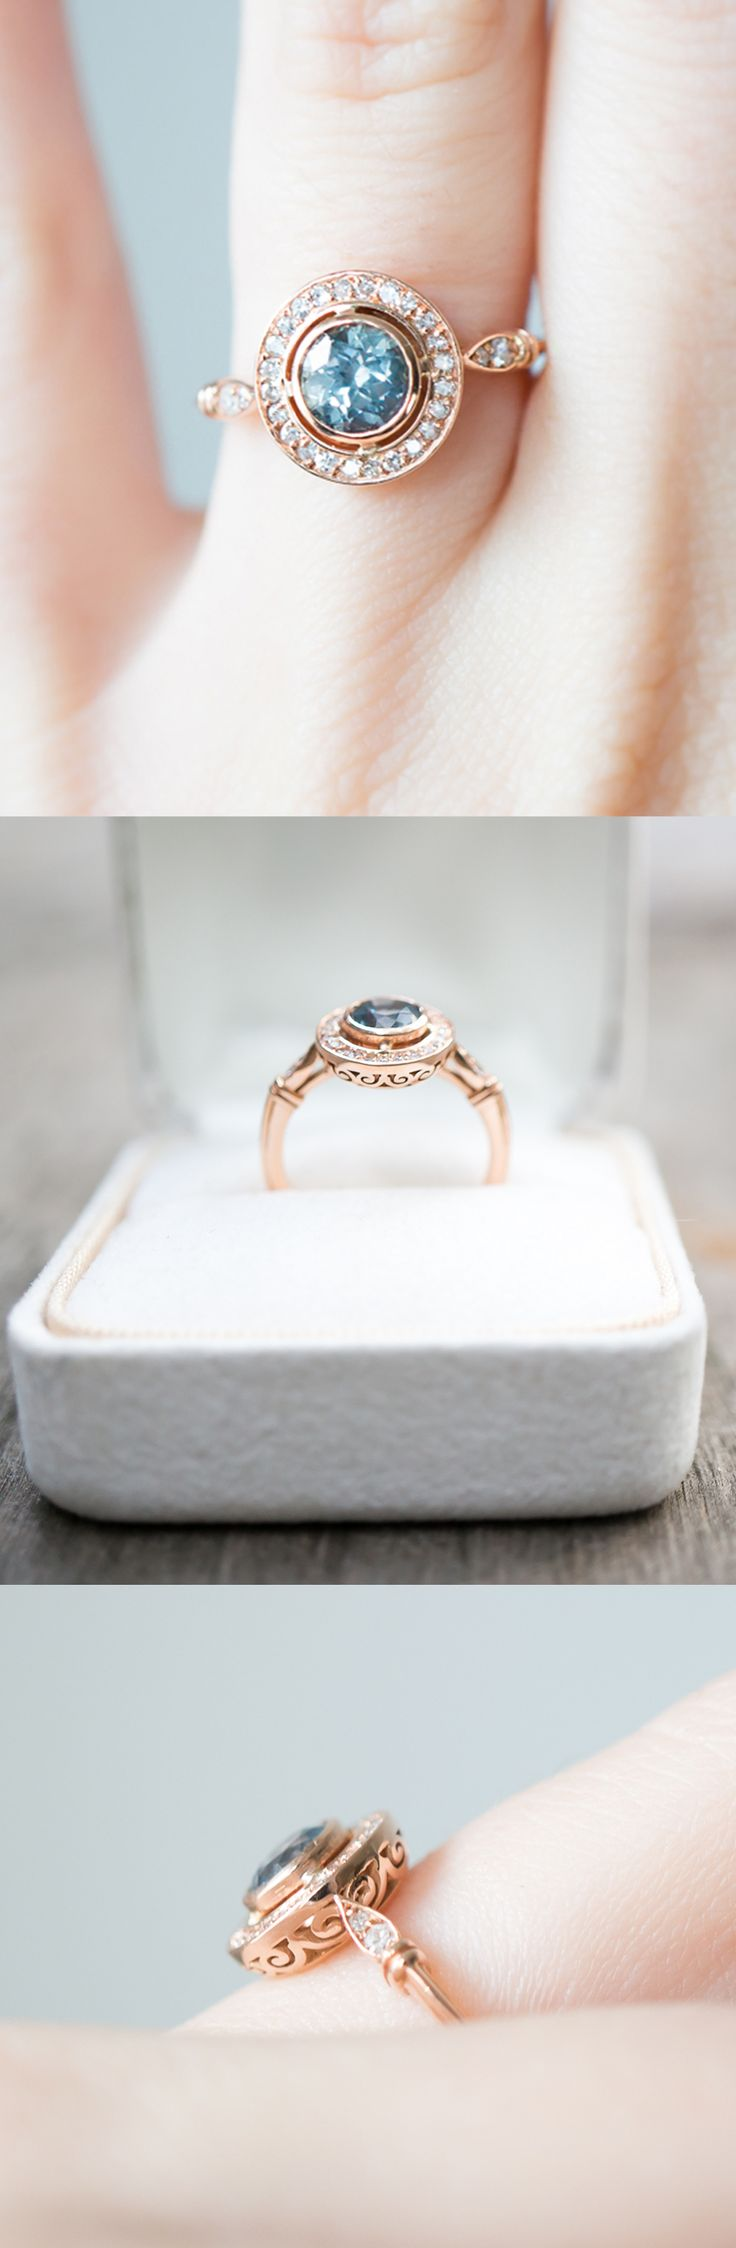 A detailed Halo engagement ring with a light blue sapphire and 28 reclaimed diamonds in 18k gold by S. Kind & Co.